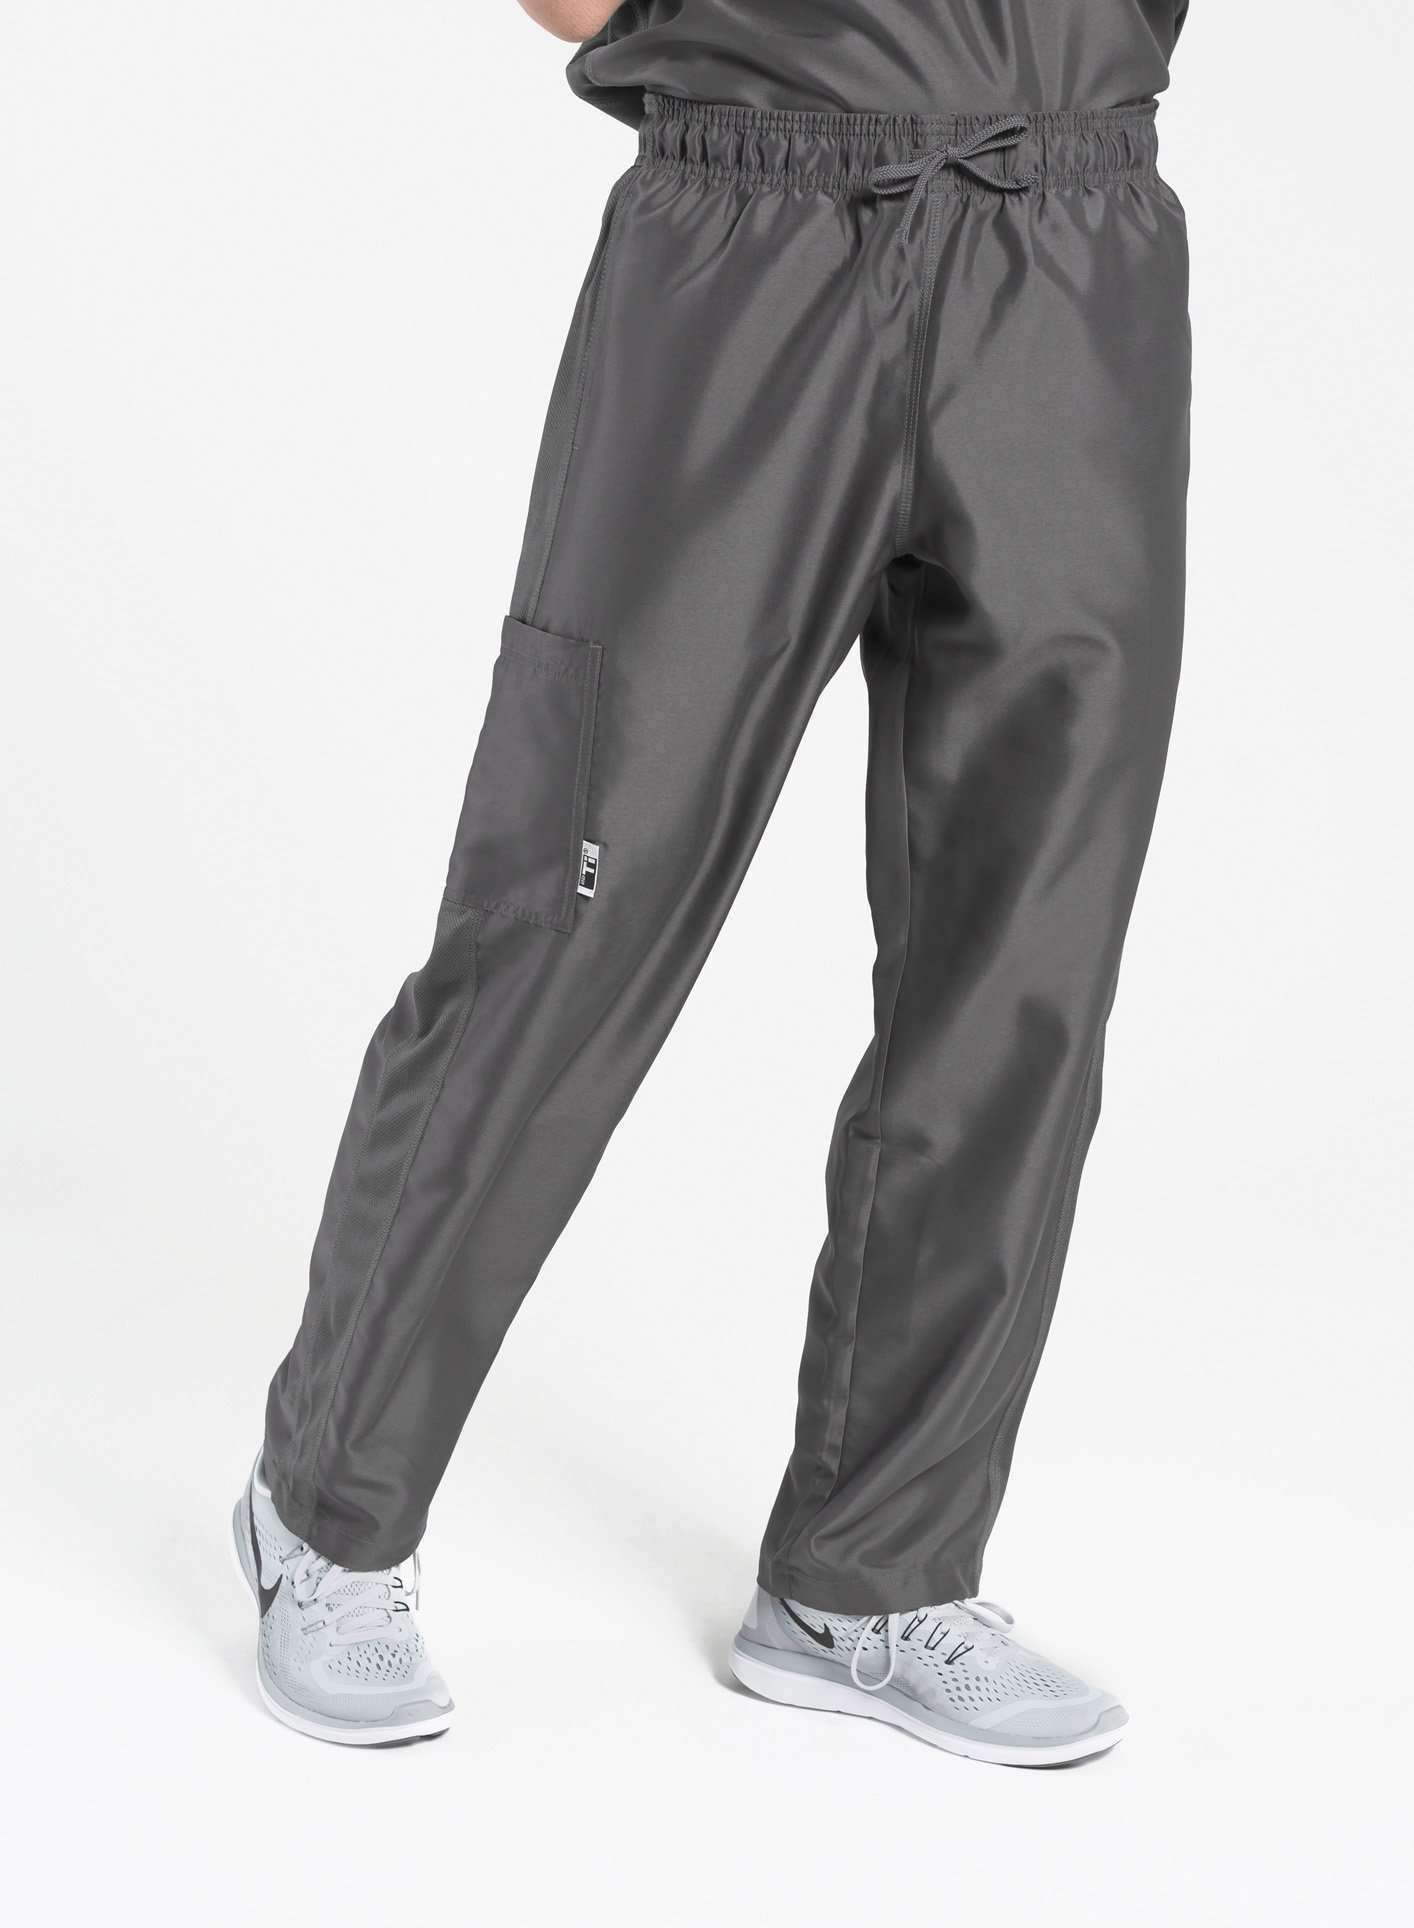 mens Elements cargo pocket relaxed fit scrub pants dark grey